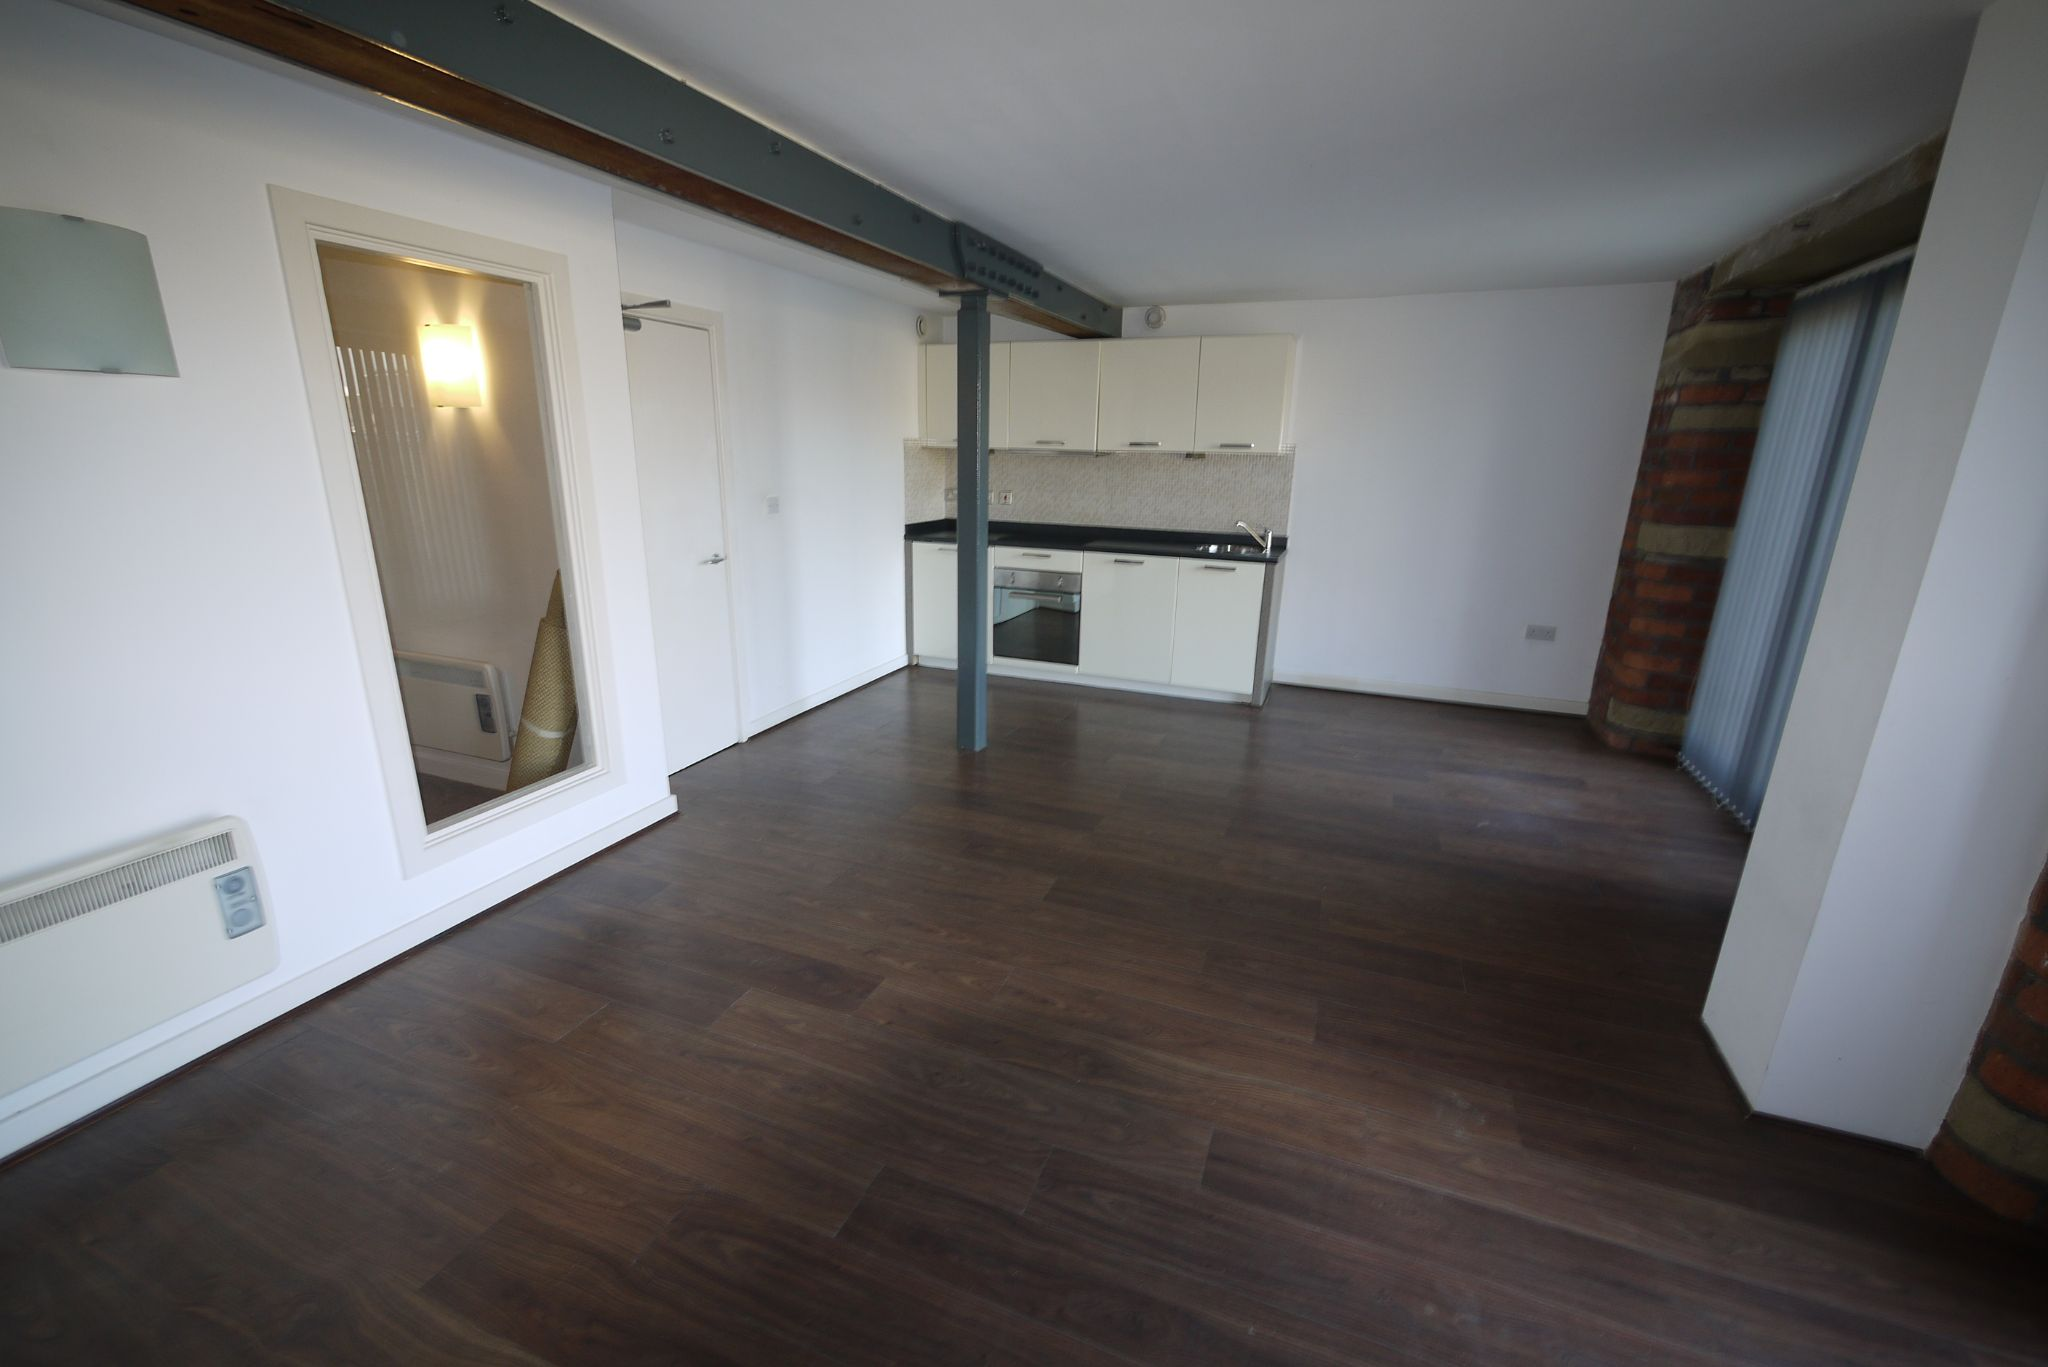 1 bedroom ground floor flat/apartment SSTC in Brighouse - Photograph 2.